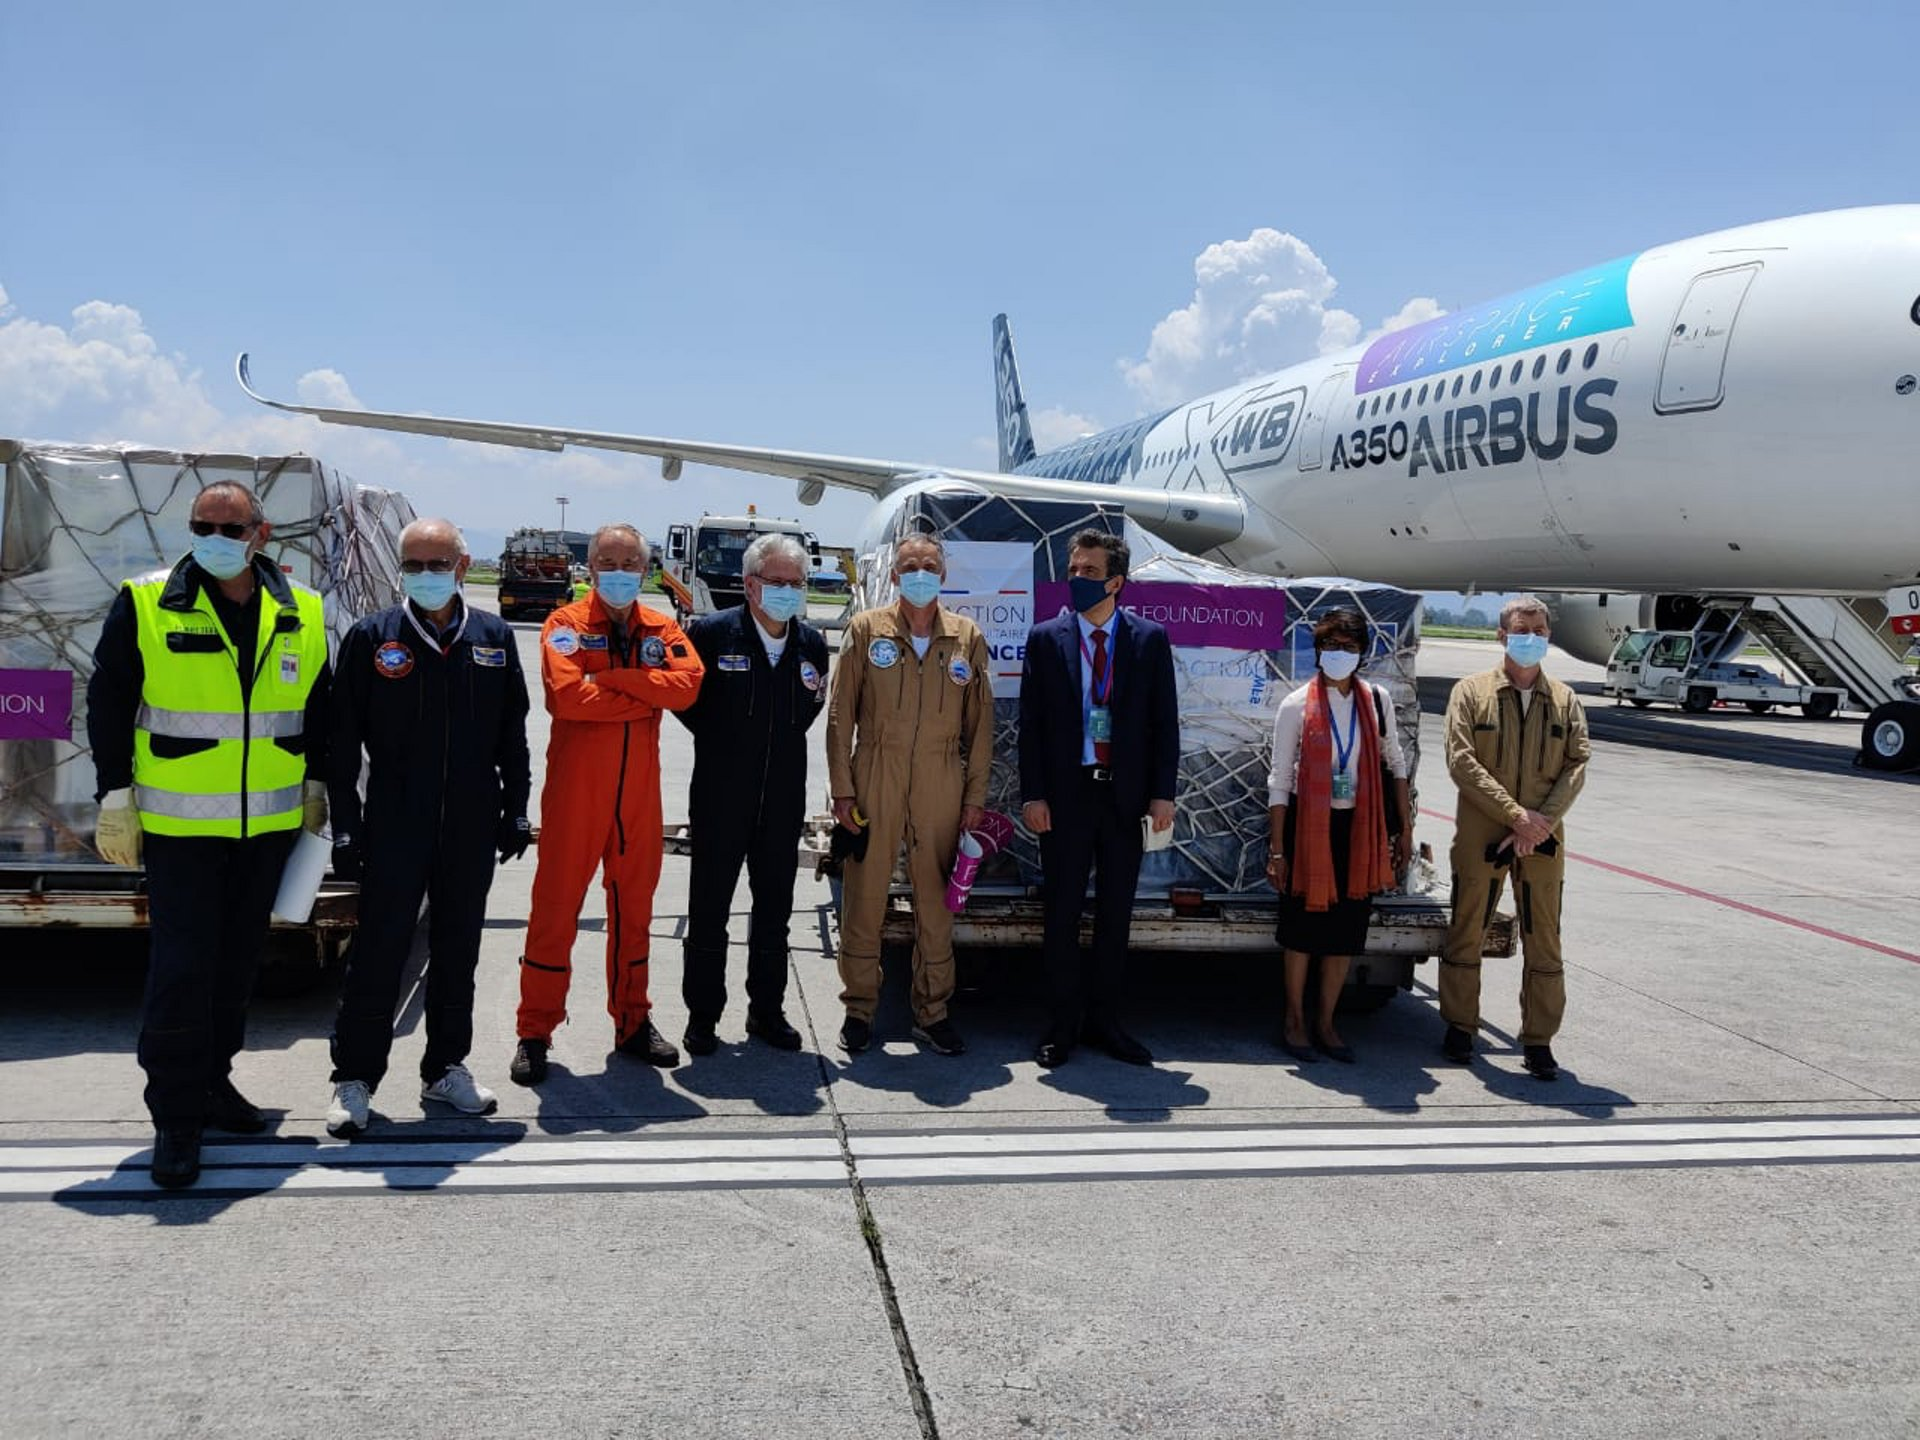 H.E. François-Xavier Léger, Ambassador of France to Nepal, and Ms. Leela Devaradjalou, Deputy Chief of Mission, Embassy of France in Nepal, with the crew of an A350 test flight that delivered Covid-19 relief cargo donated by the French Ministry for Europe and Foreign Affairs' Crisis and Support Centre (CDCS). The solidarity mission was supported by the Airbus Foundation, which helped move the medical supplies from Toulouse, the headquarters of Airbus, to Kathmandu on Wednesday, June 2, 2021